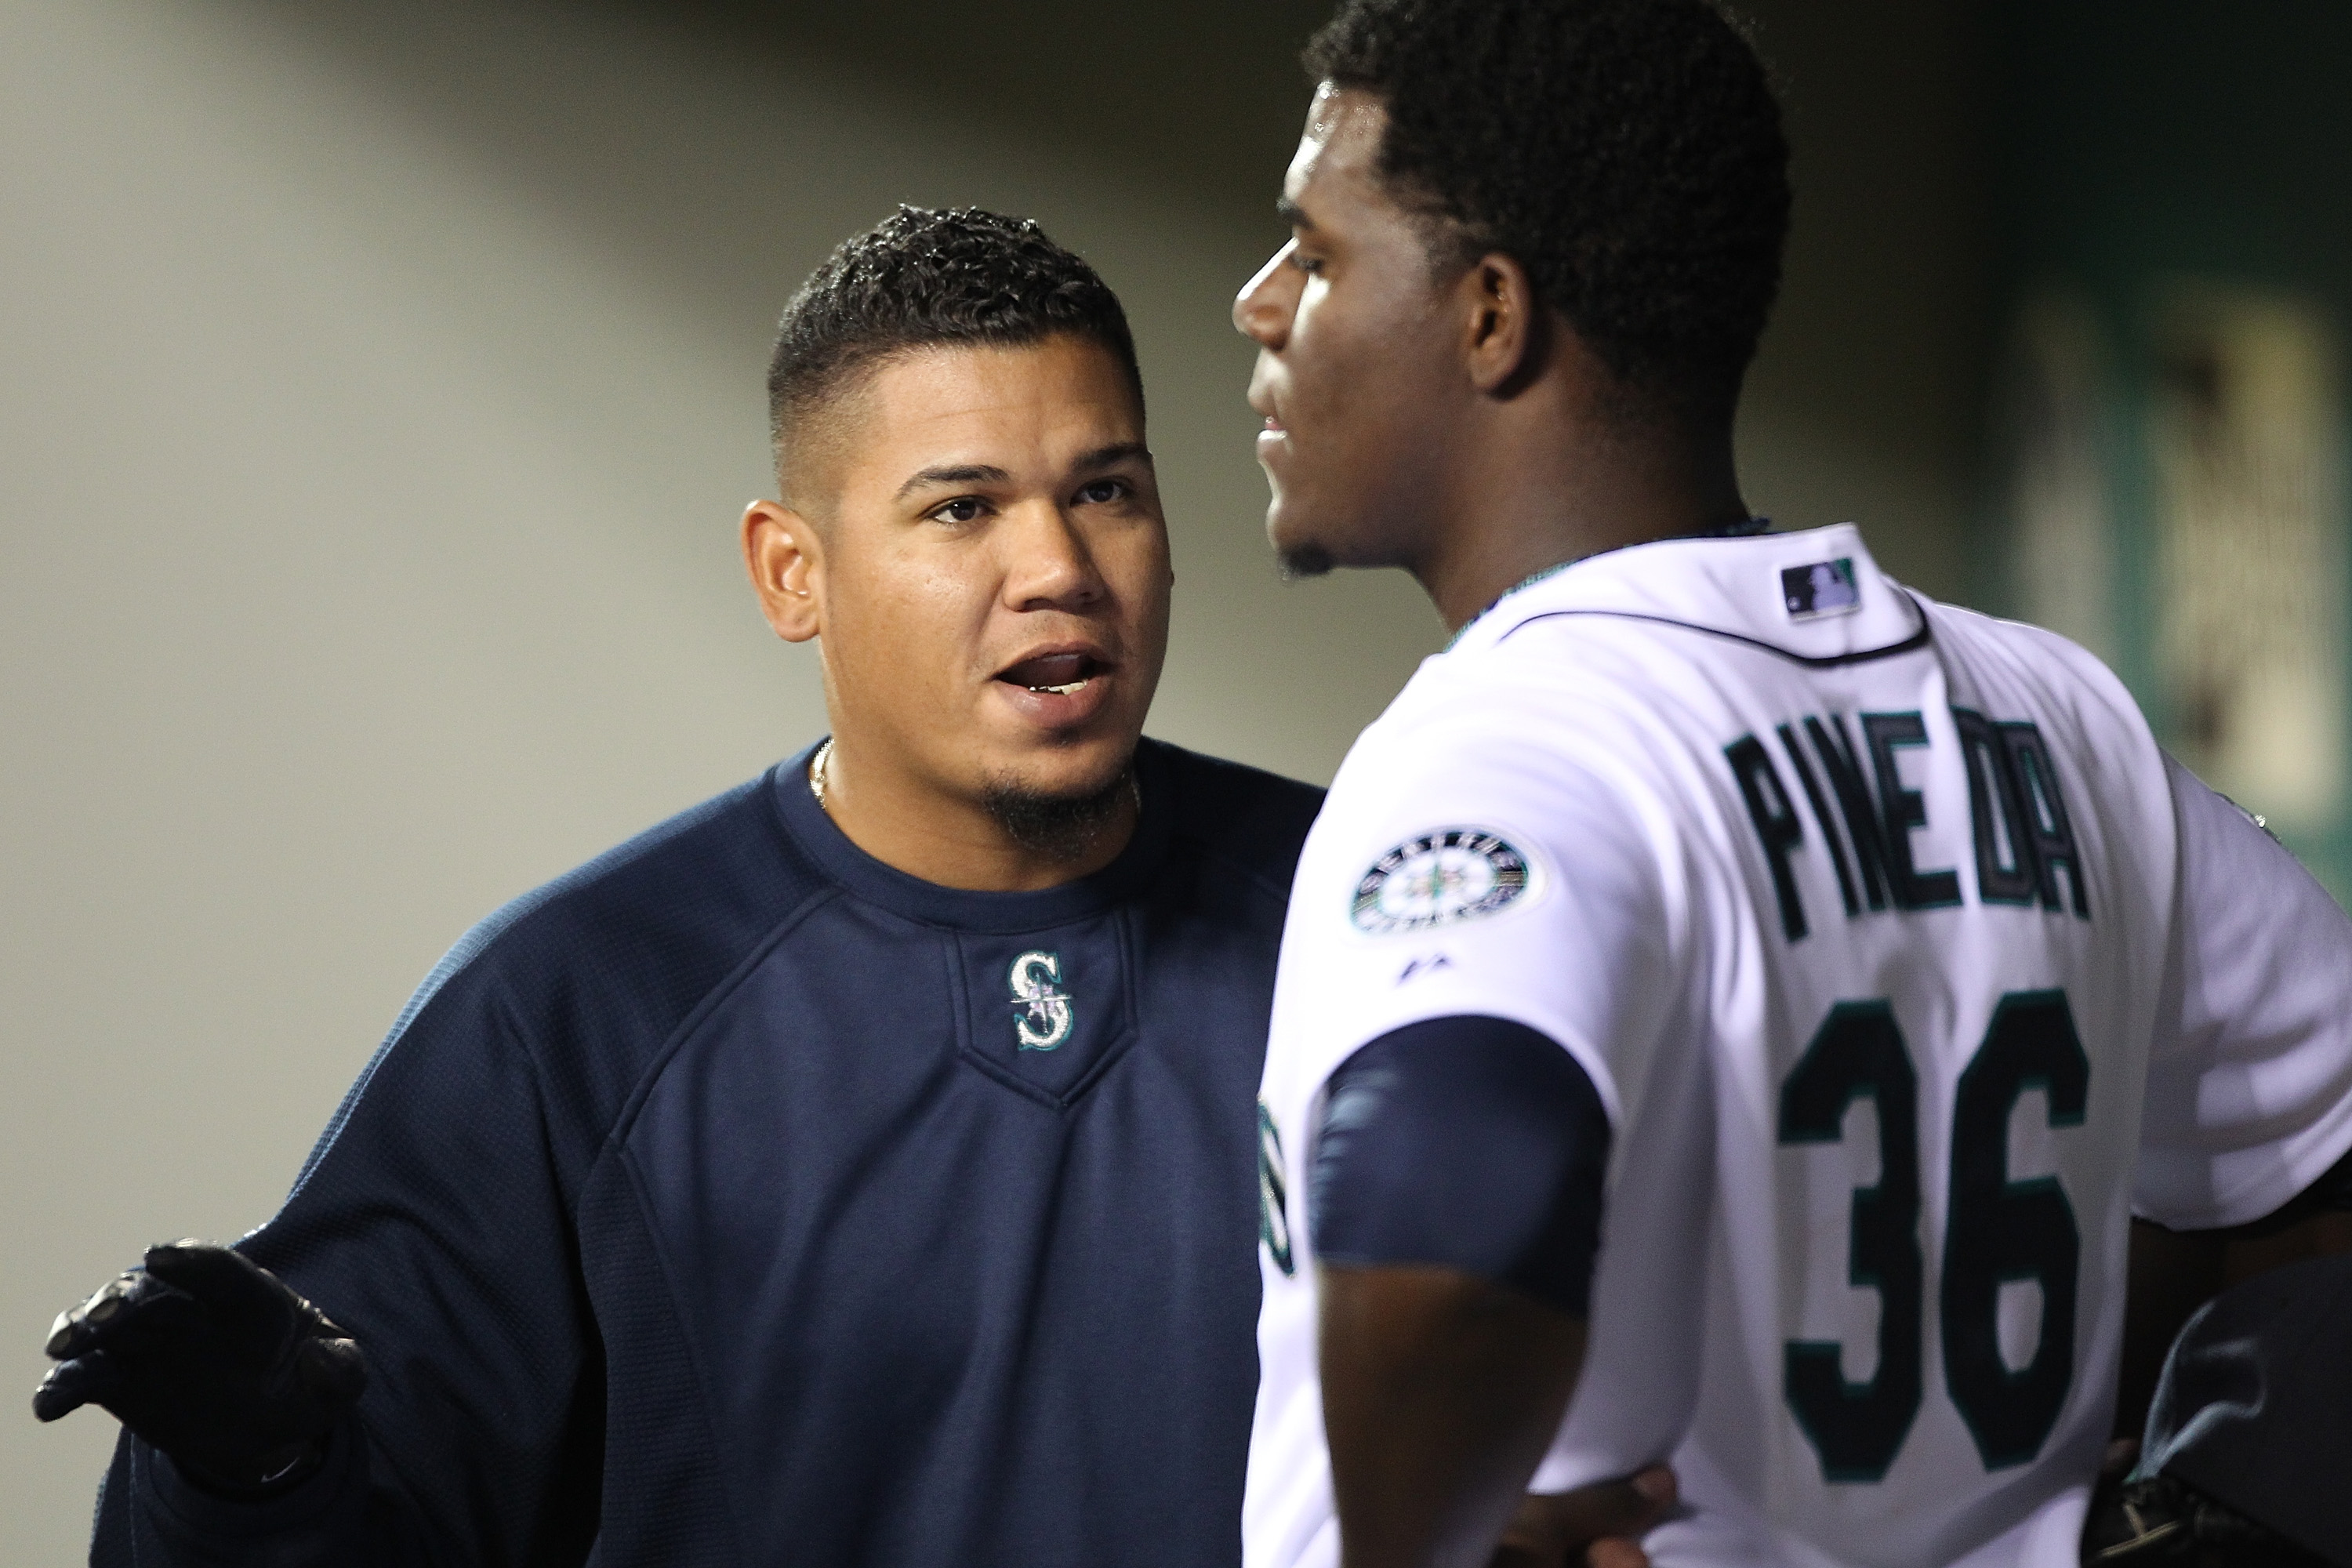 SEATTLE - APRIL 12:  Felix Hernandez #34 of the Seattle Mariners talks with starting pitcher Michael Pineda #36 after he was removed from the game in the eighth inning against the Toronto Blue Jays at Safeco Field on April 12, 2011 in Seattle, Washington.